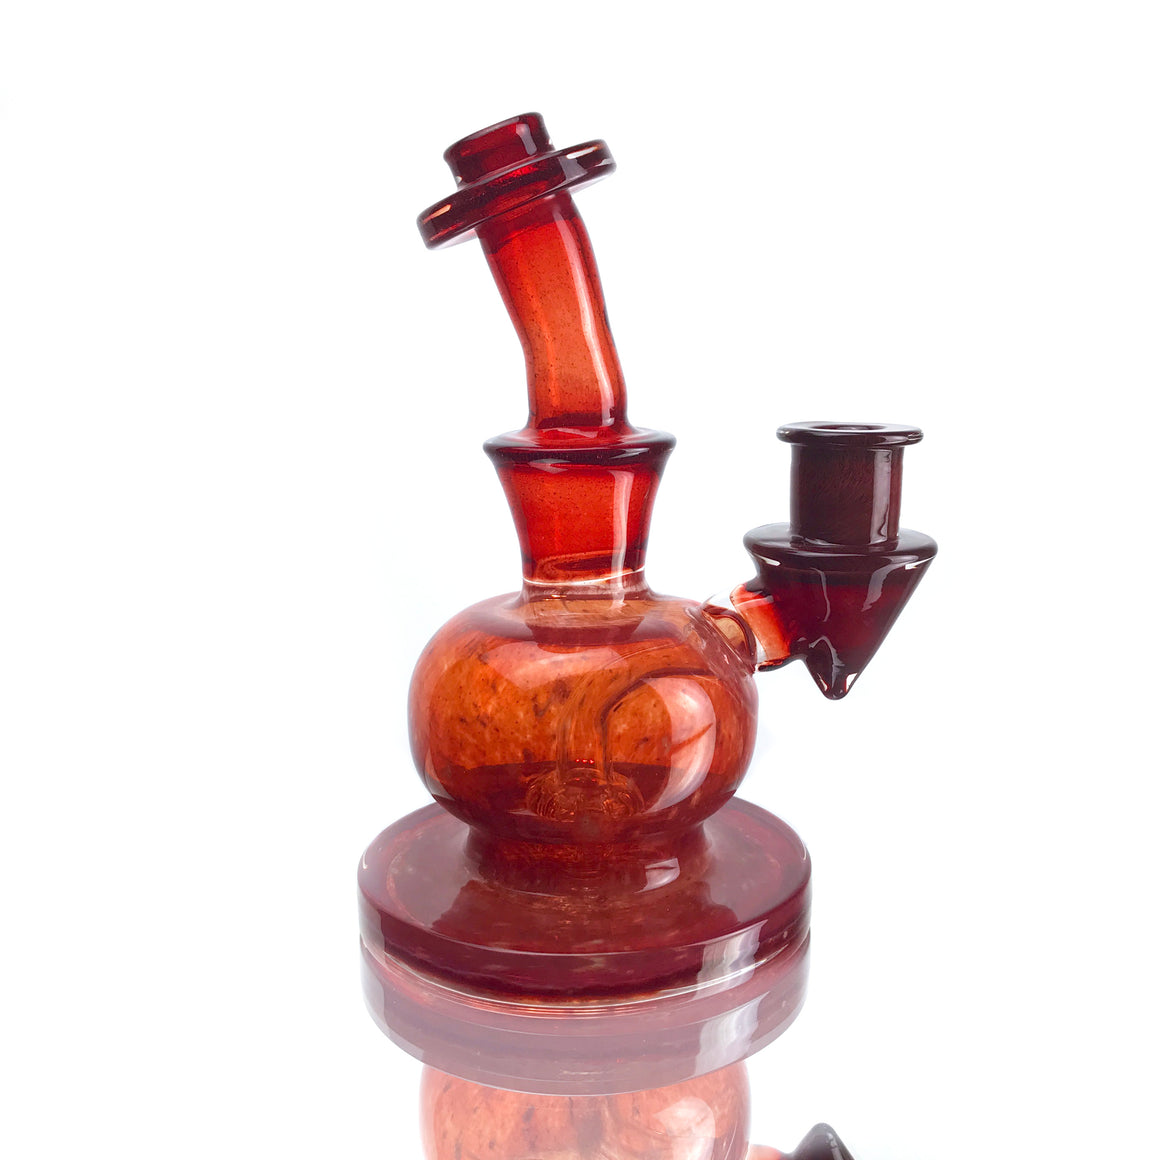 Fully-worked Circ Orb Rig - Pomegranate - 14mm Female